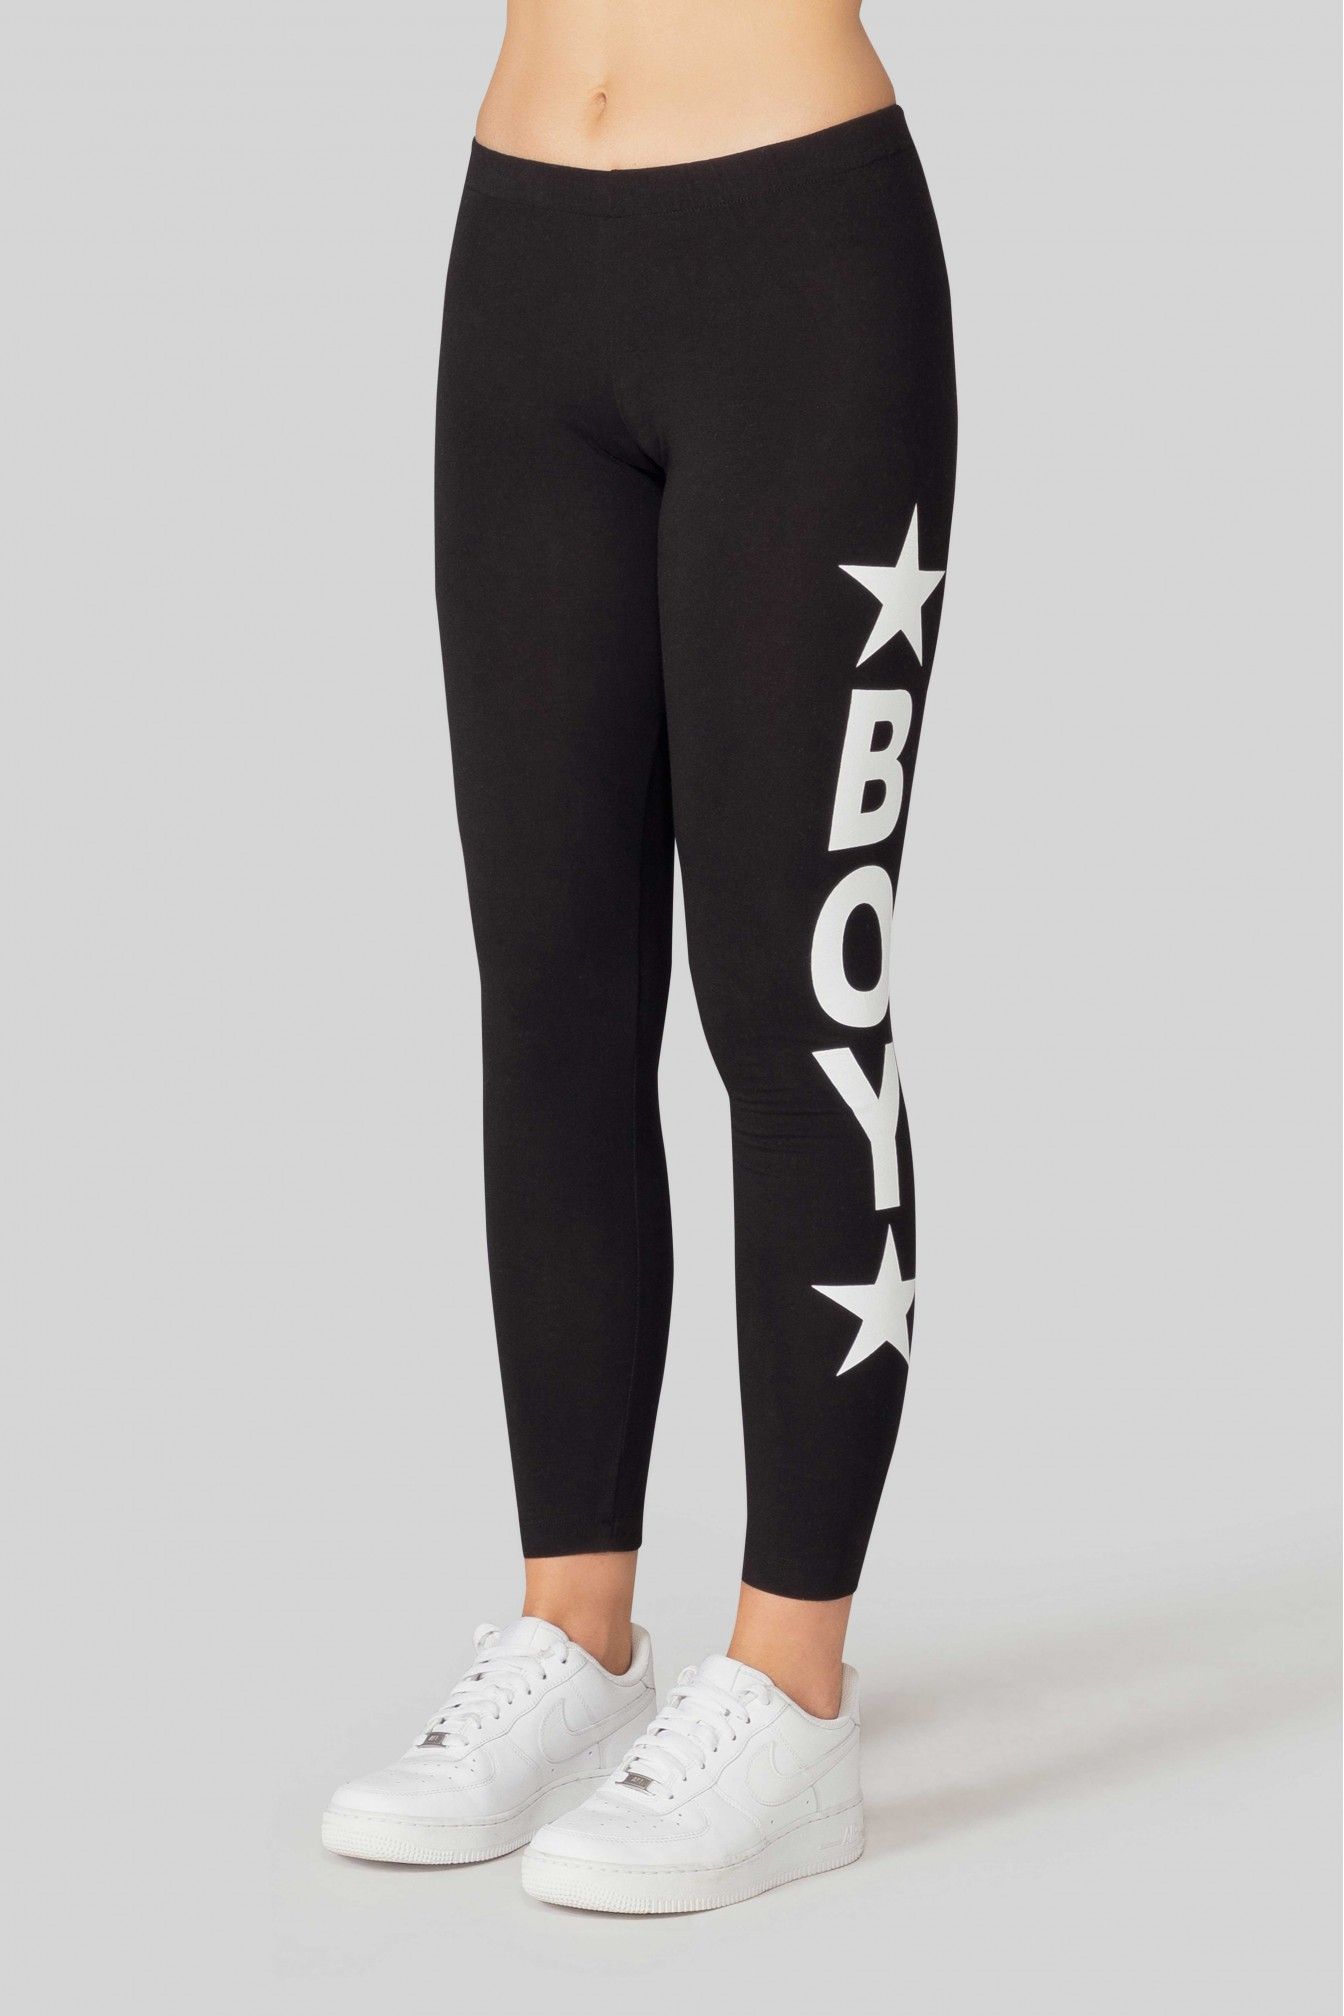 LEGGINGS - BLD2619 - BOY LONDON